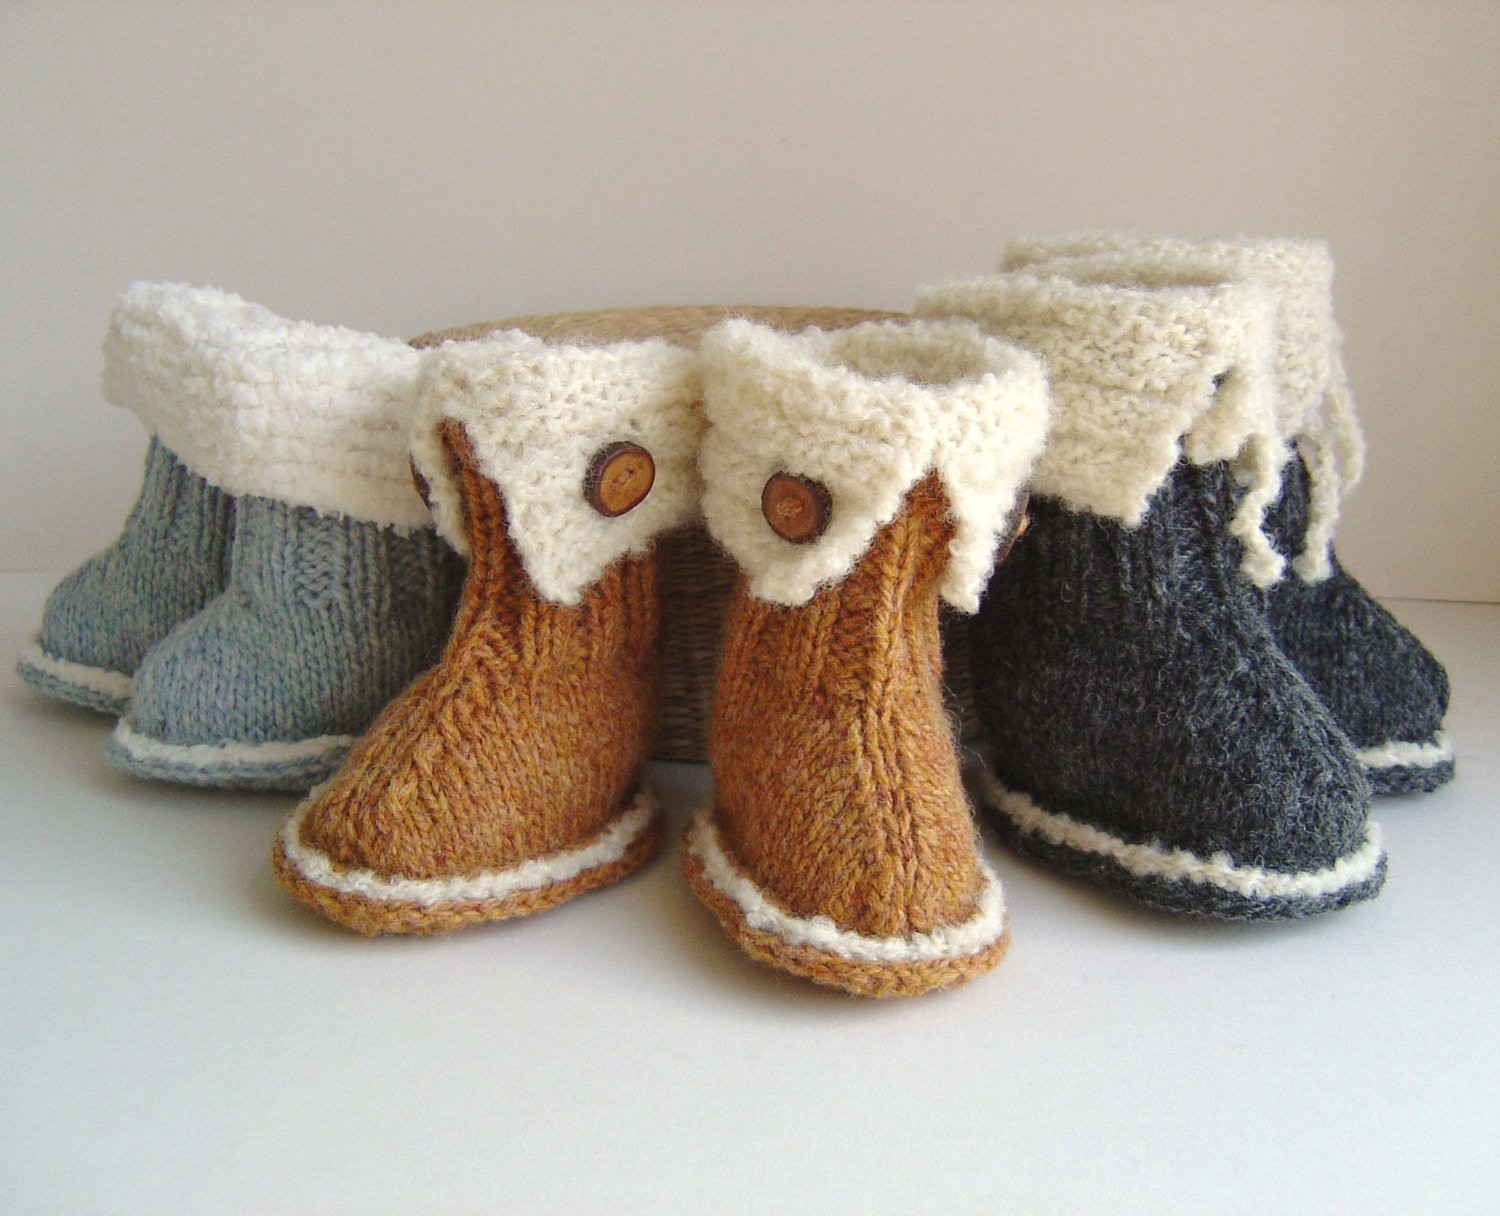 New Free Knitting Pattern for Babies Ugg Boots Crochet Ugg Boots Of Beautiful 42 Ideas Crochet Ugg Boots